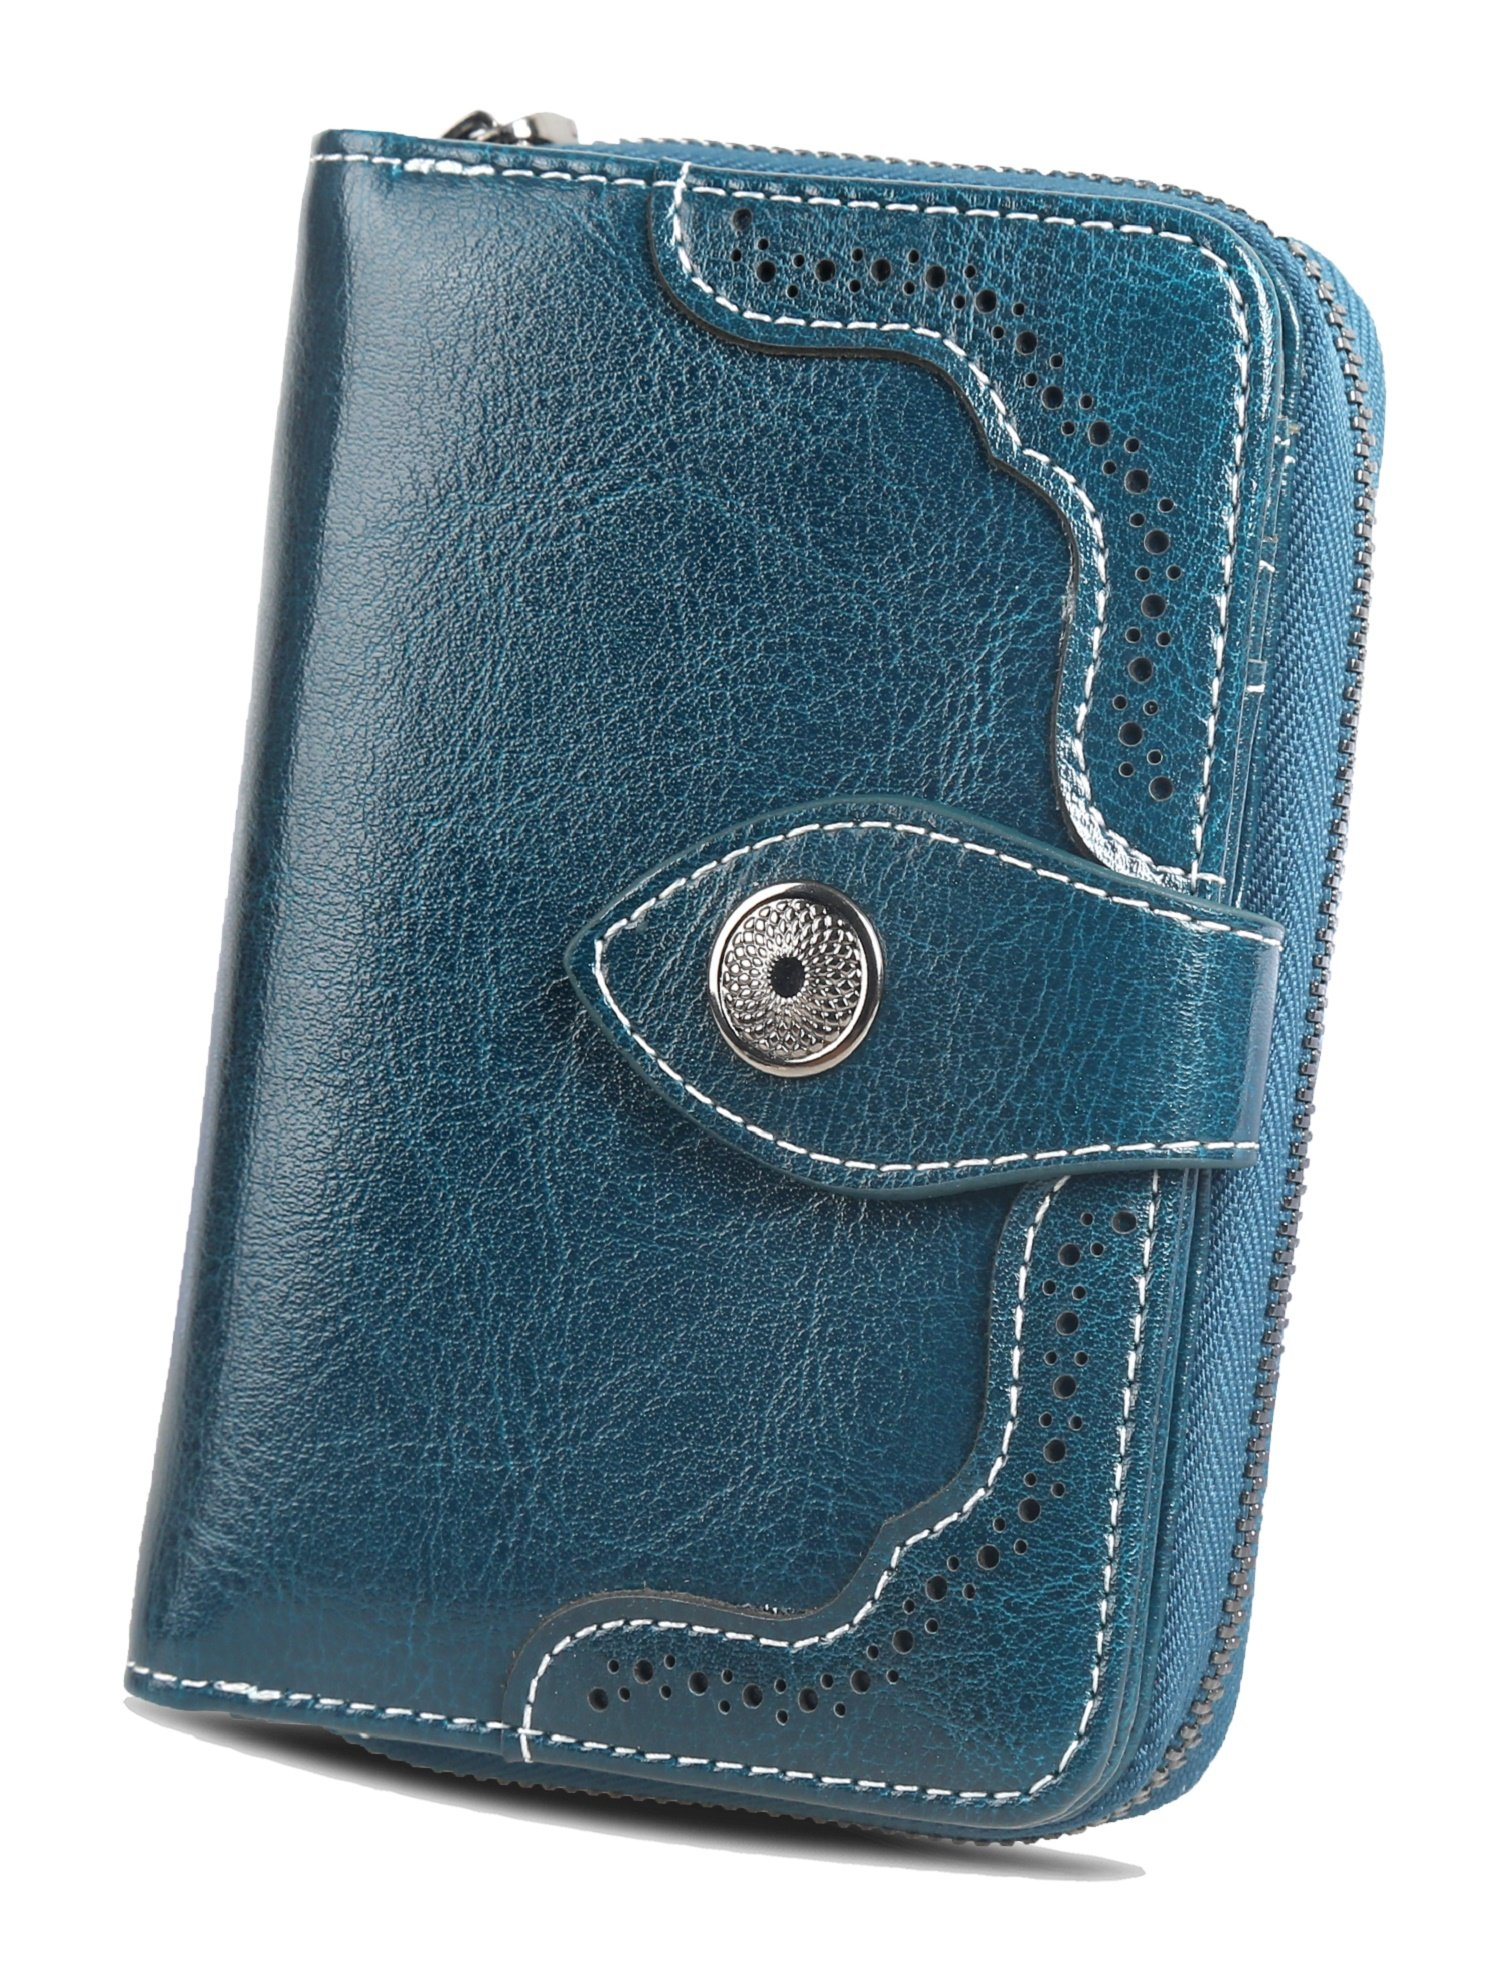 Womens Leather Small Wallet Card Case RFID Wallets Ladies Purse With ID Window